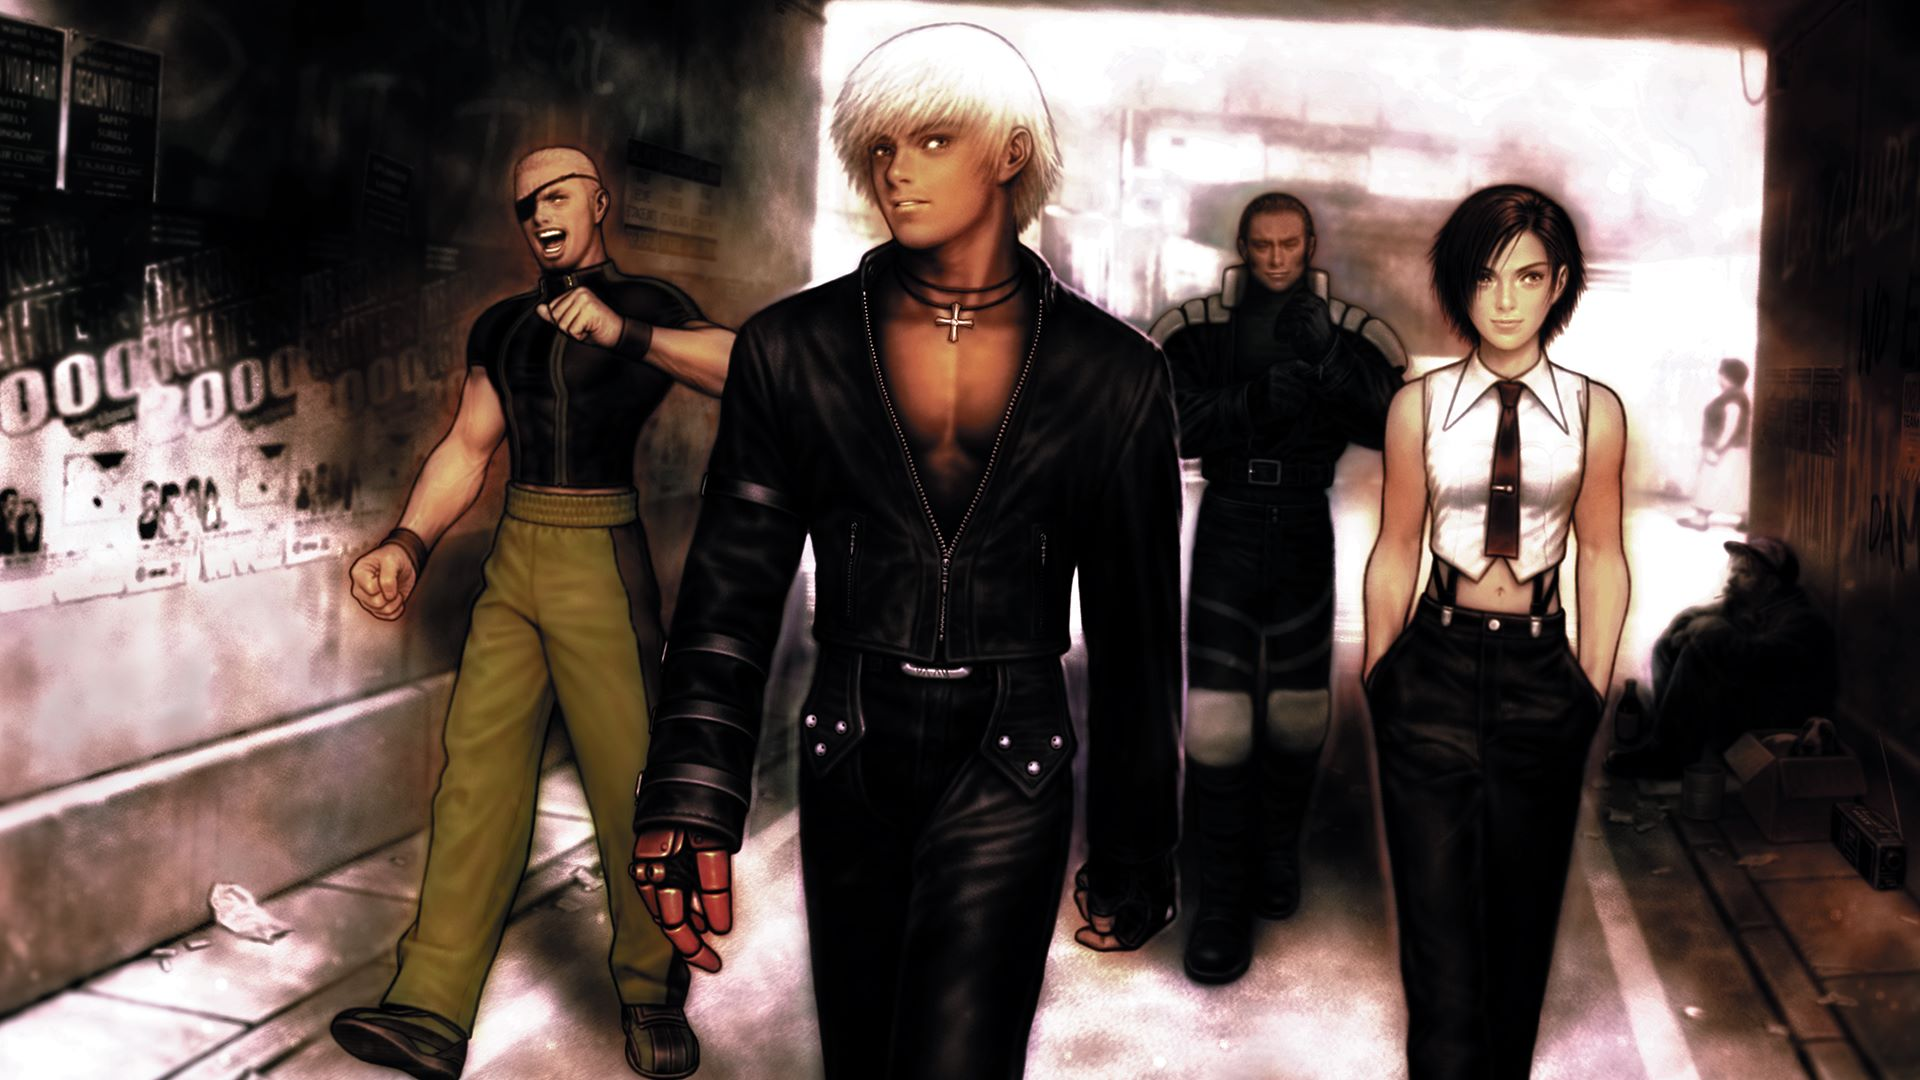 ACA NEOGEO THE KING OF FIGHTERS 2000 is now available for Xbox One https://t.co/mlROo3kMws https://t.co/p2MKEwVL4t